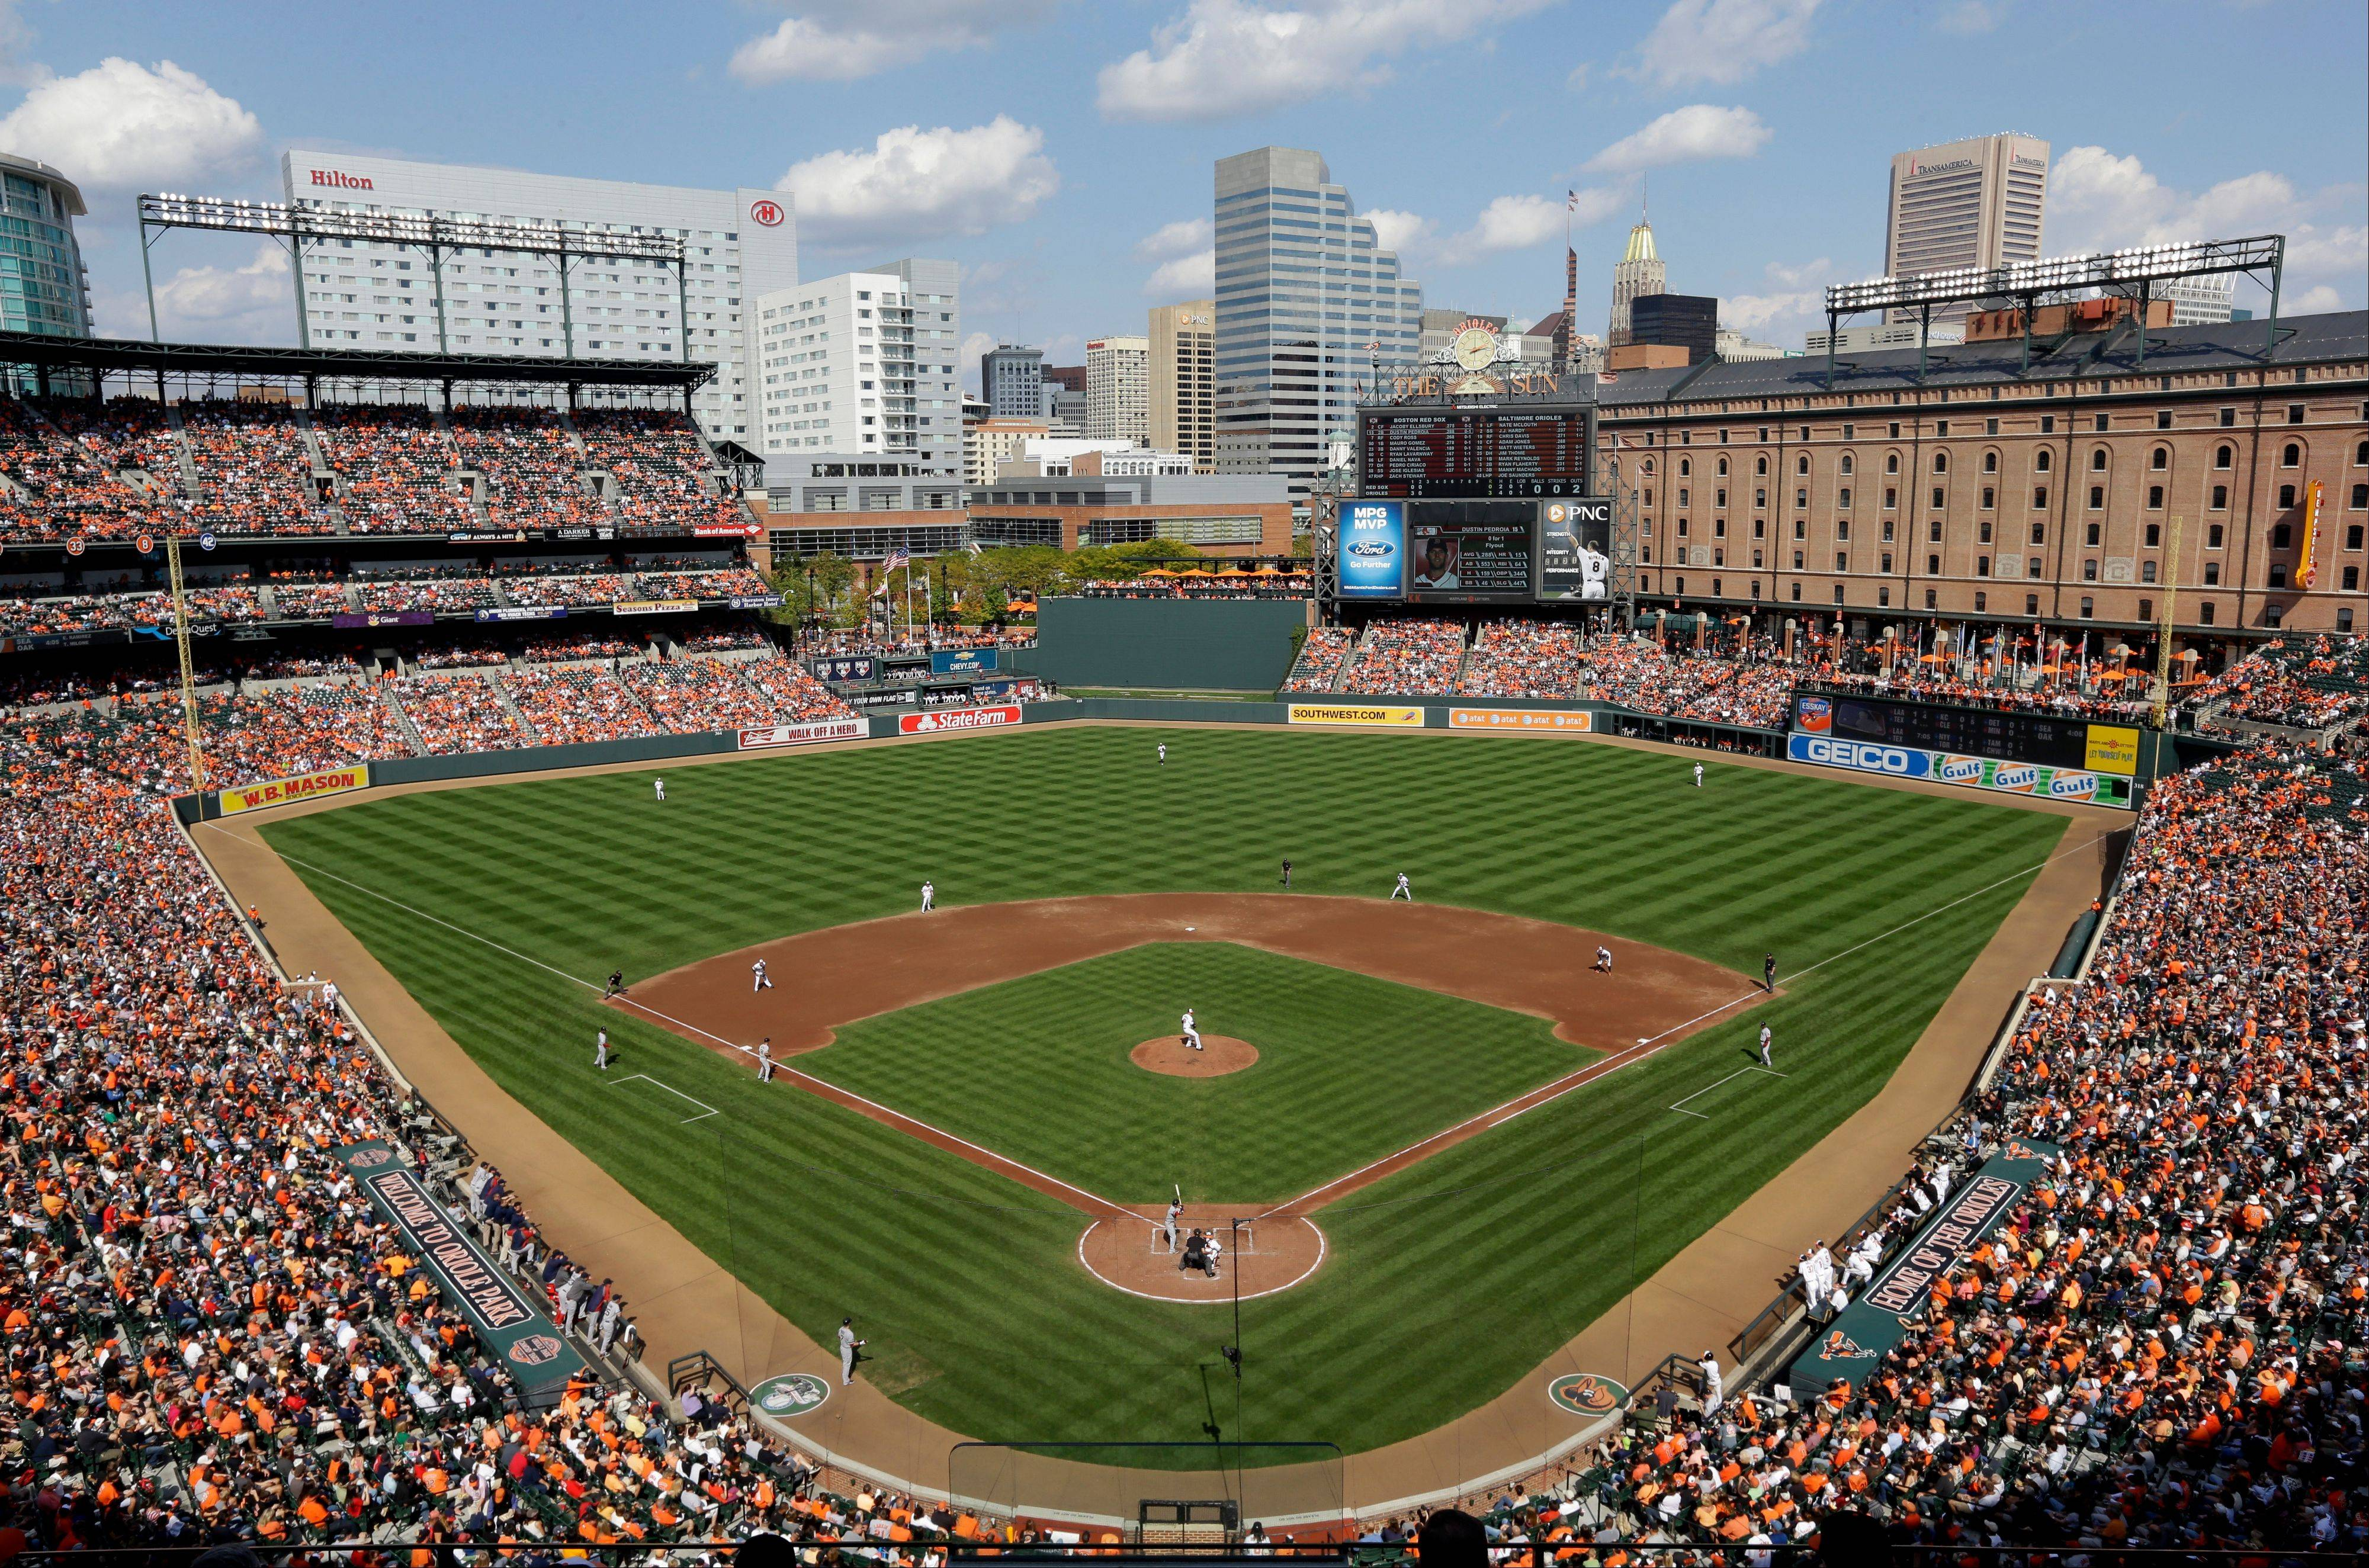 A view of Camden Yards during the third inning of a baseball game between the Baltimore Orioles and the Boston Red Sox in Baltimore.